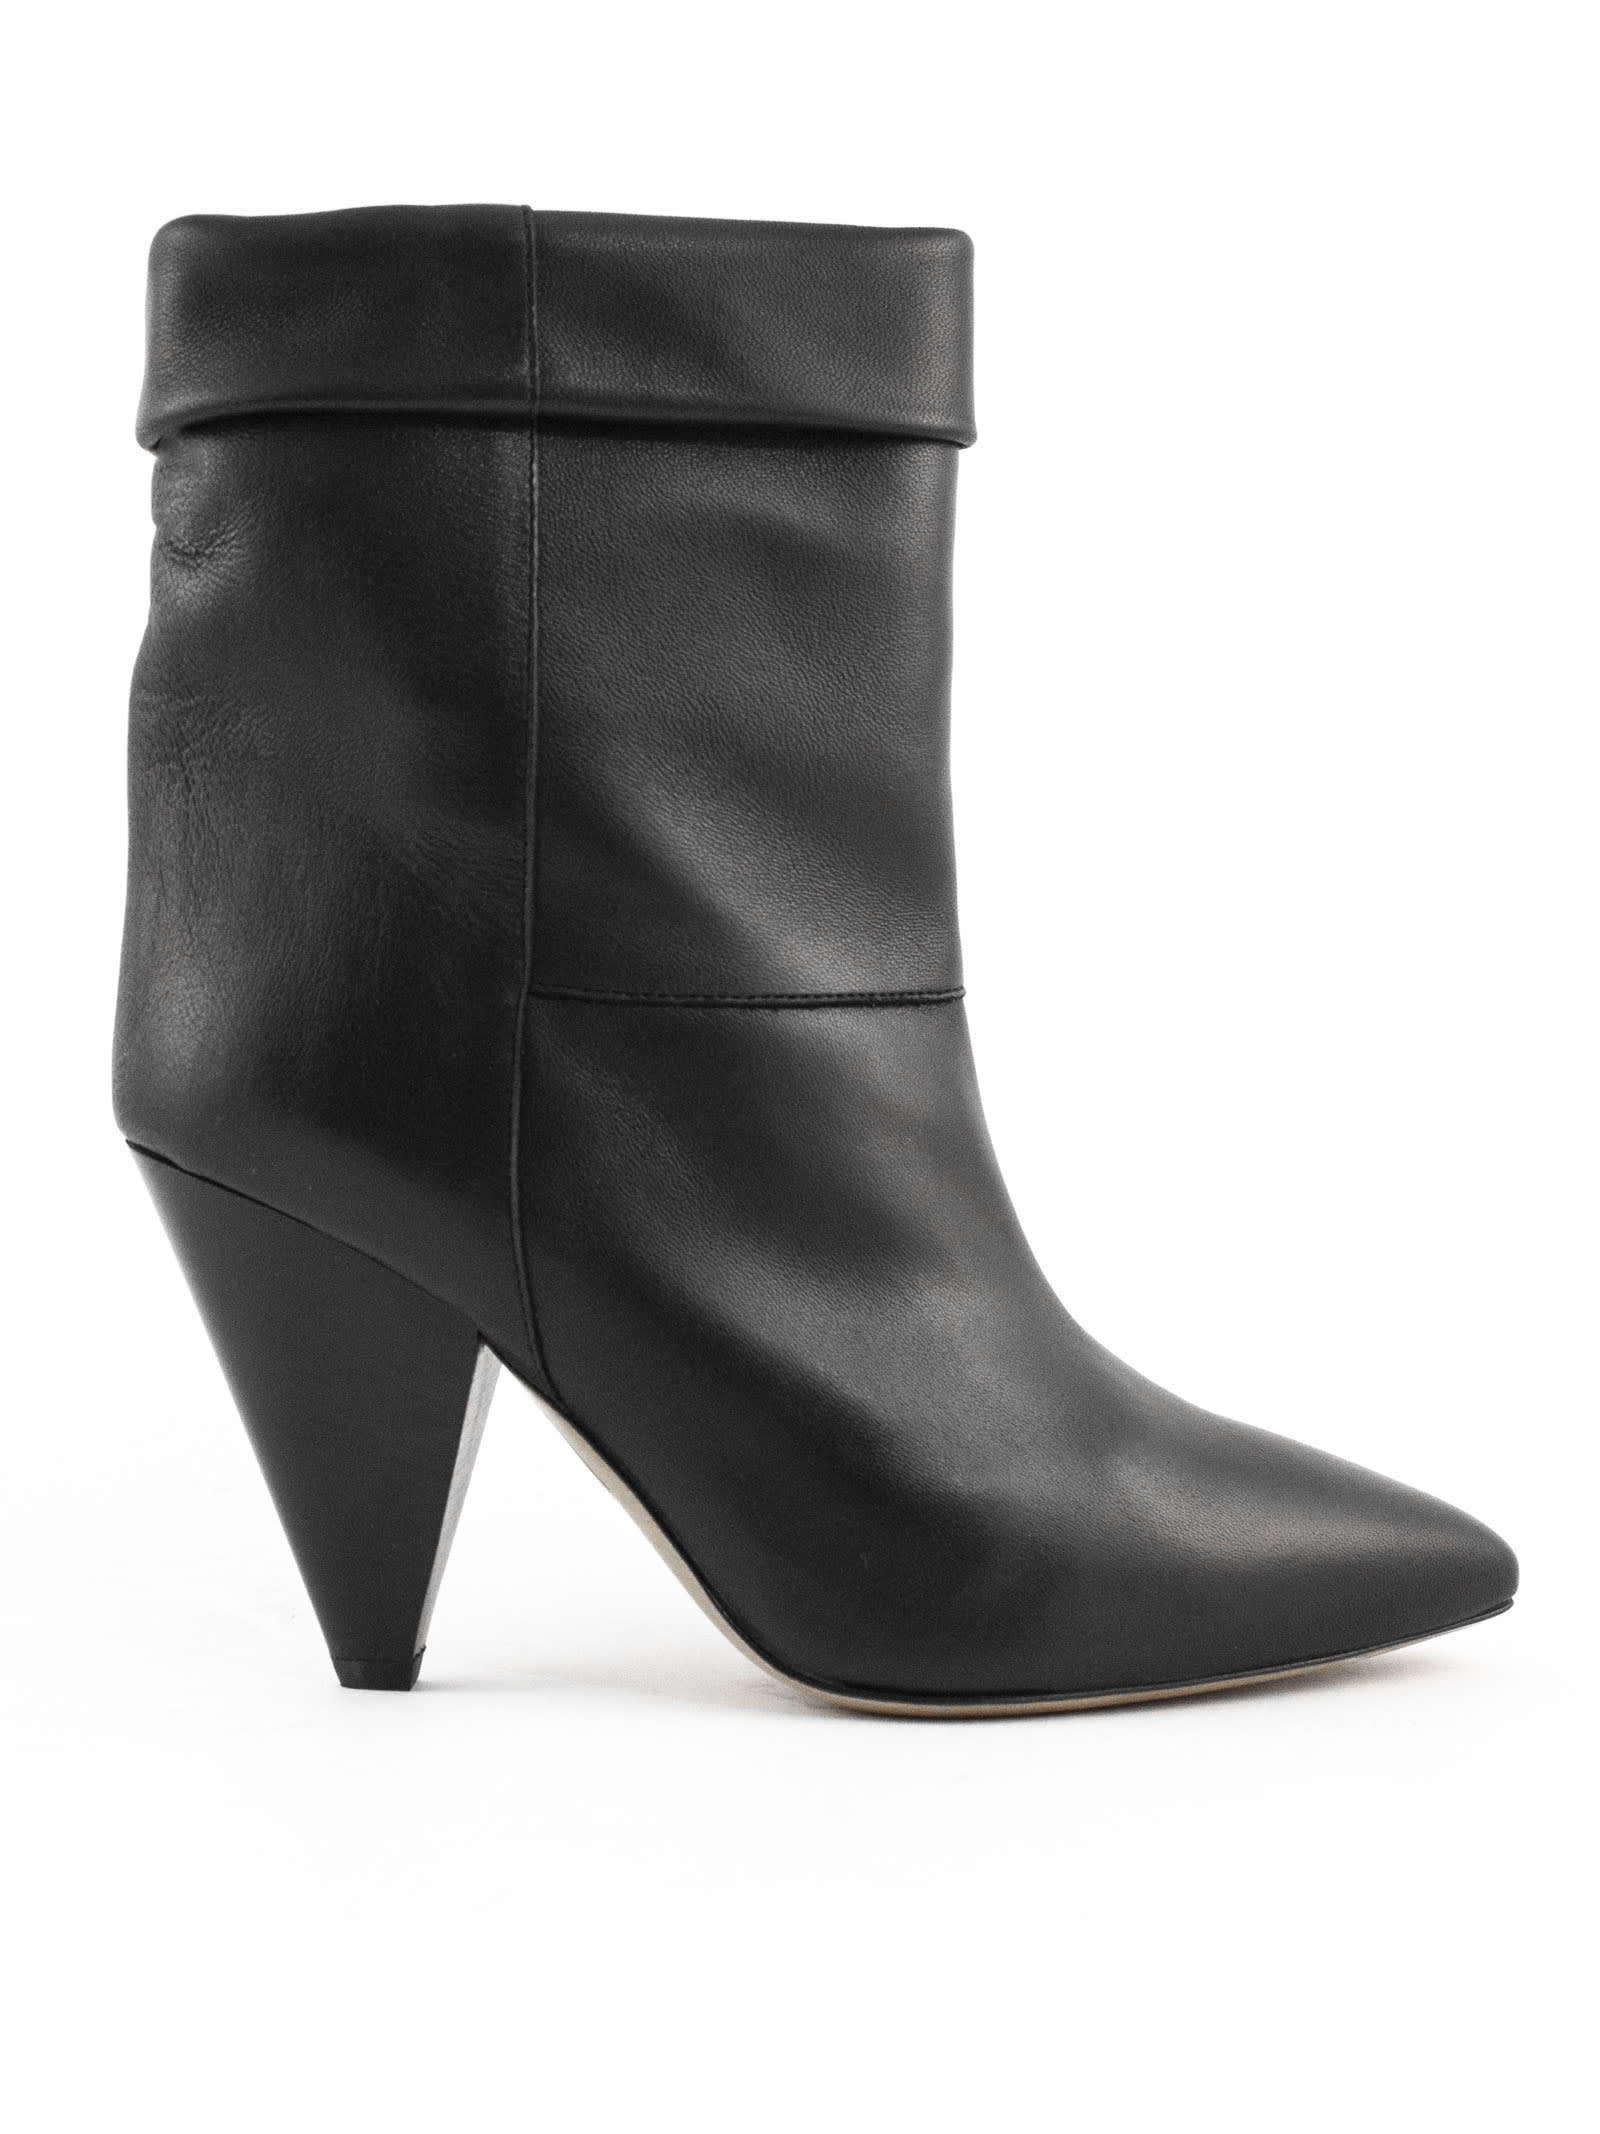 Buy Isabel Marant Black Tapered Heel Boots online, shop Isabel Marant shoes with free shipping